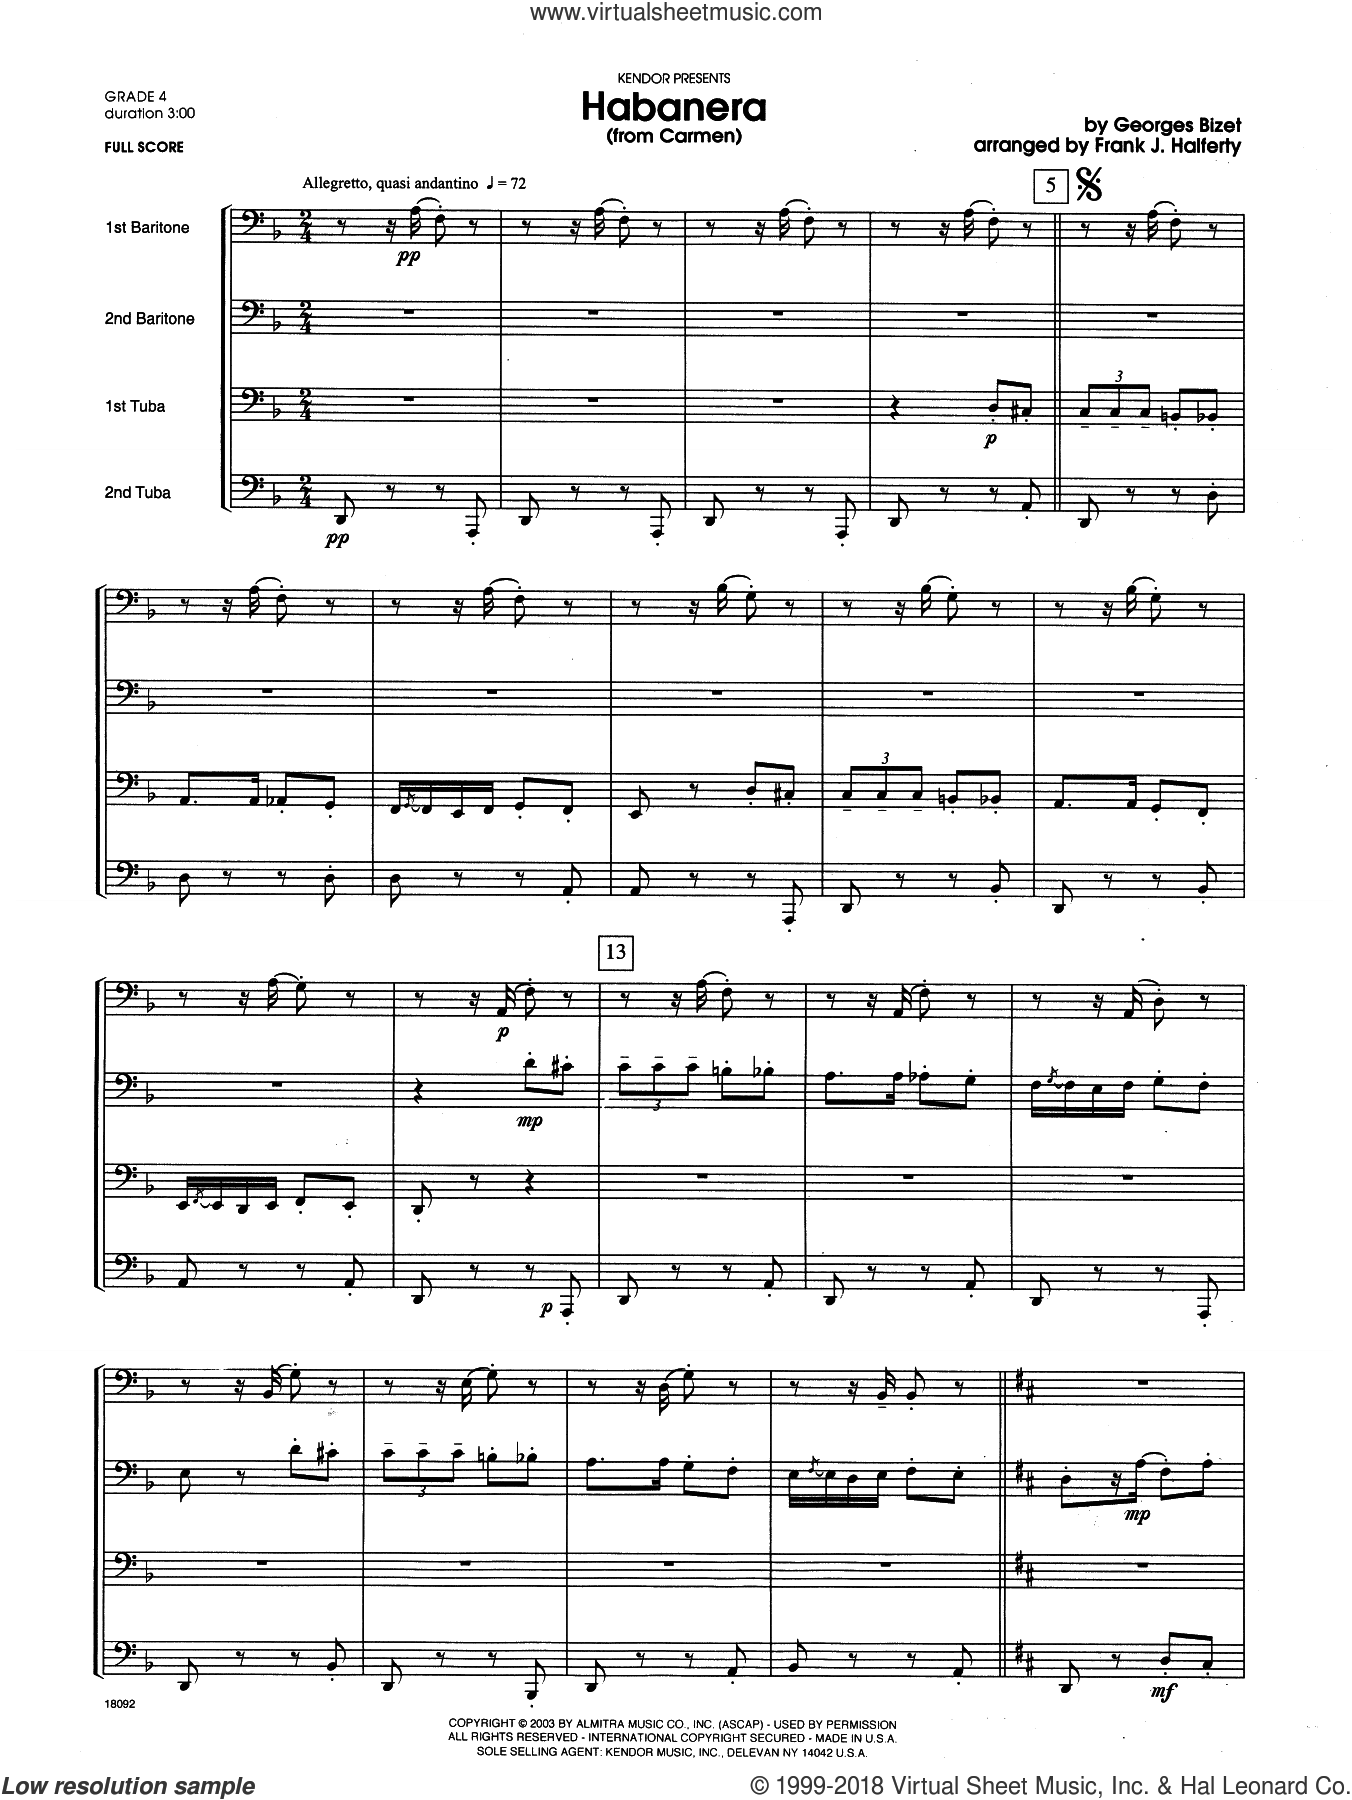 Habanera (from Carmen) (COMPLETE) sheet music for two tubas by Georges Bizet and Frank J. Halferty, classical score, intermediate skill level